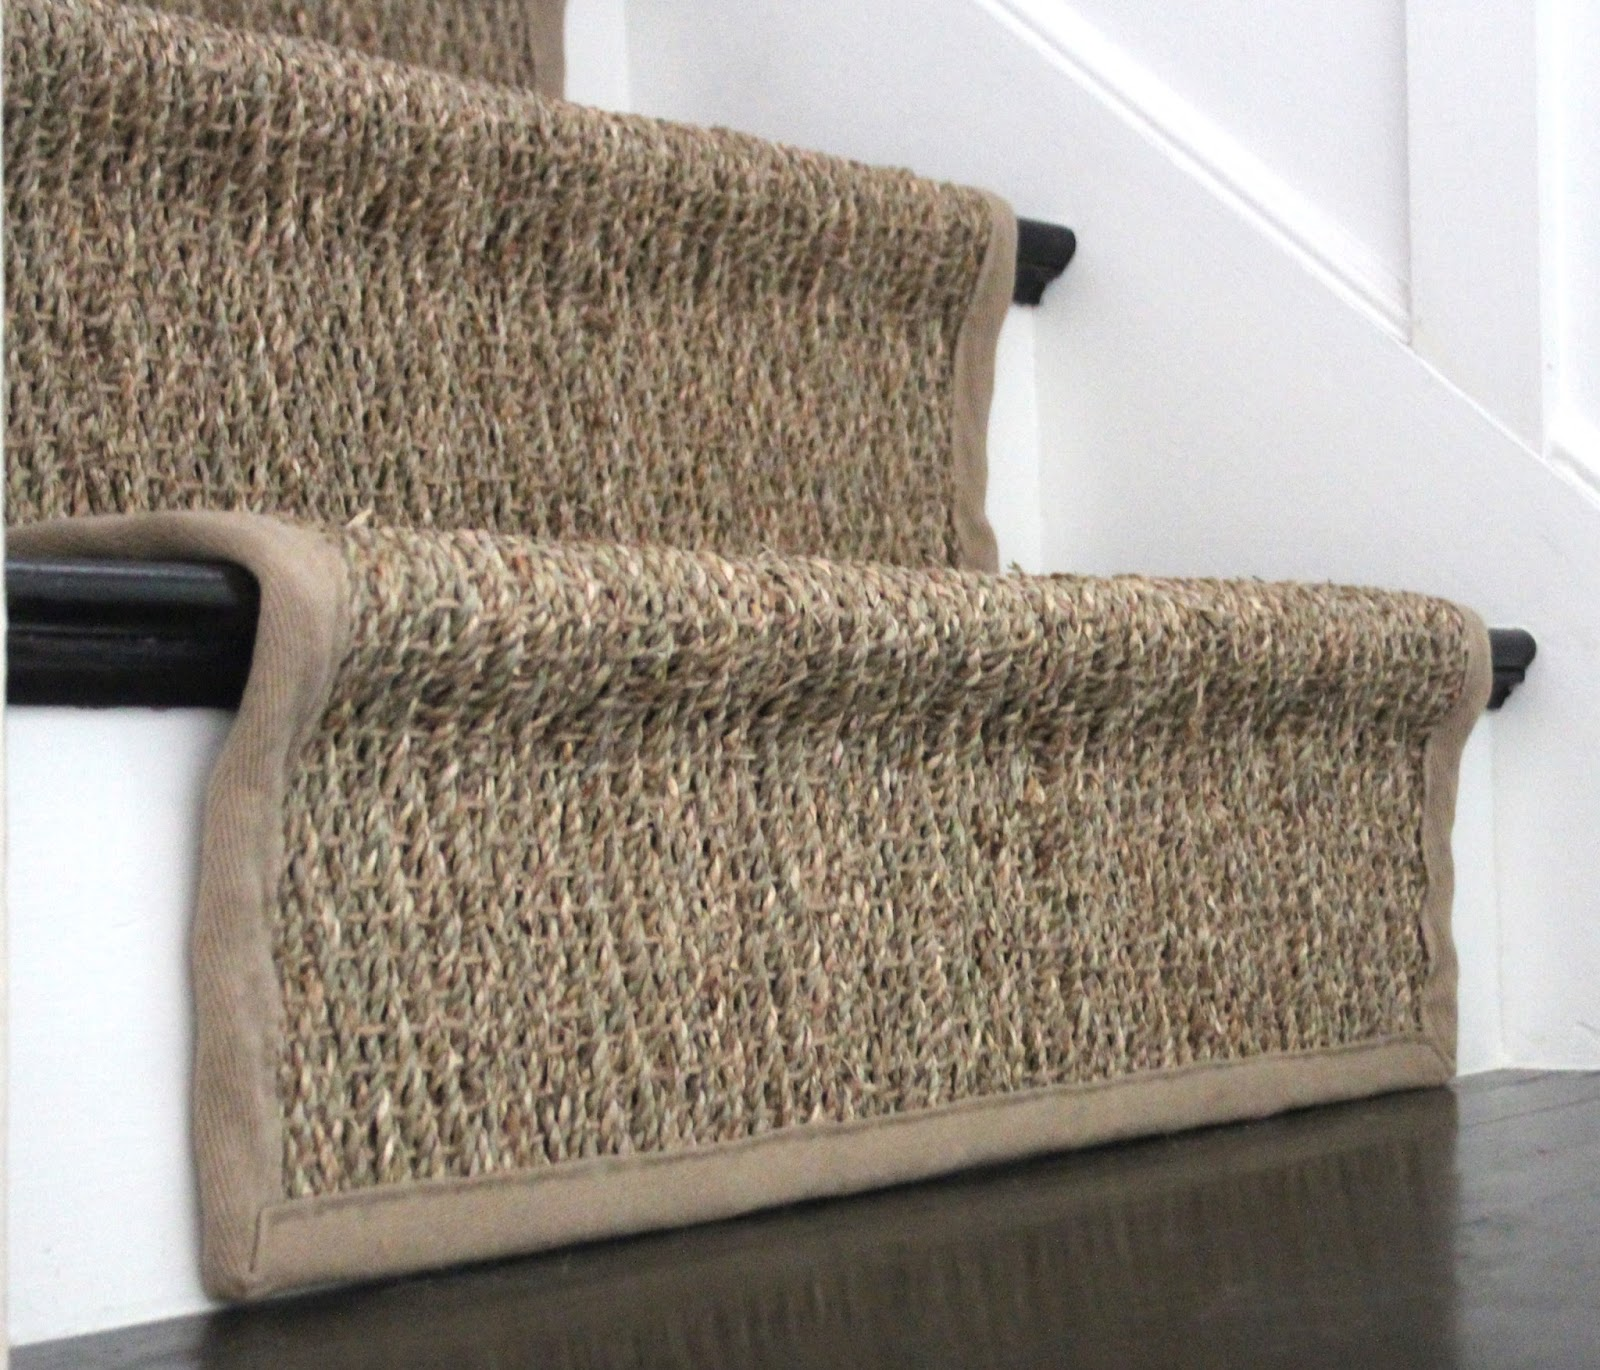 How To Install A Seagrass Stair Runner Shine Your Light